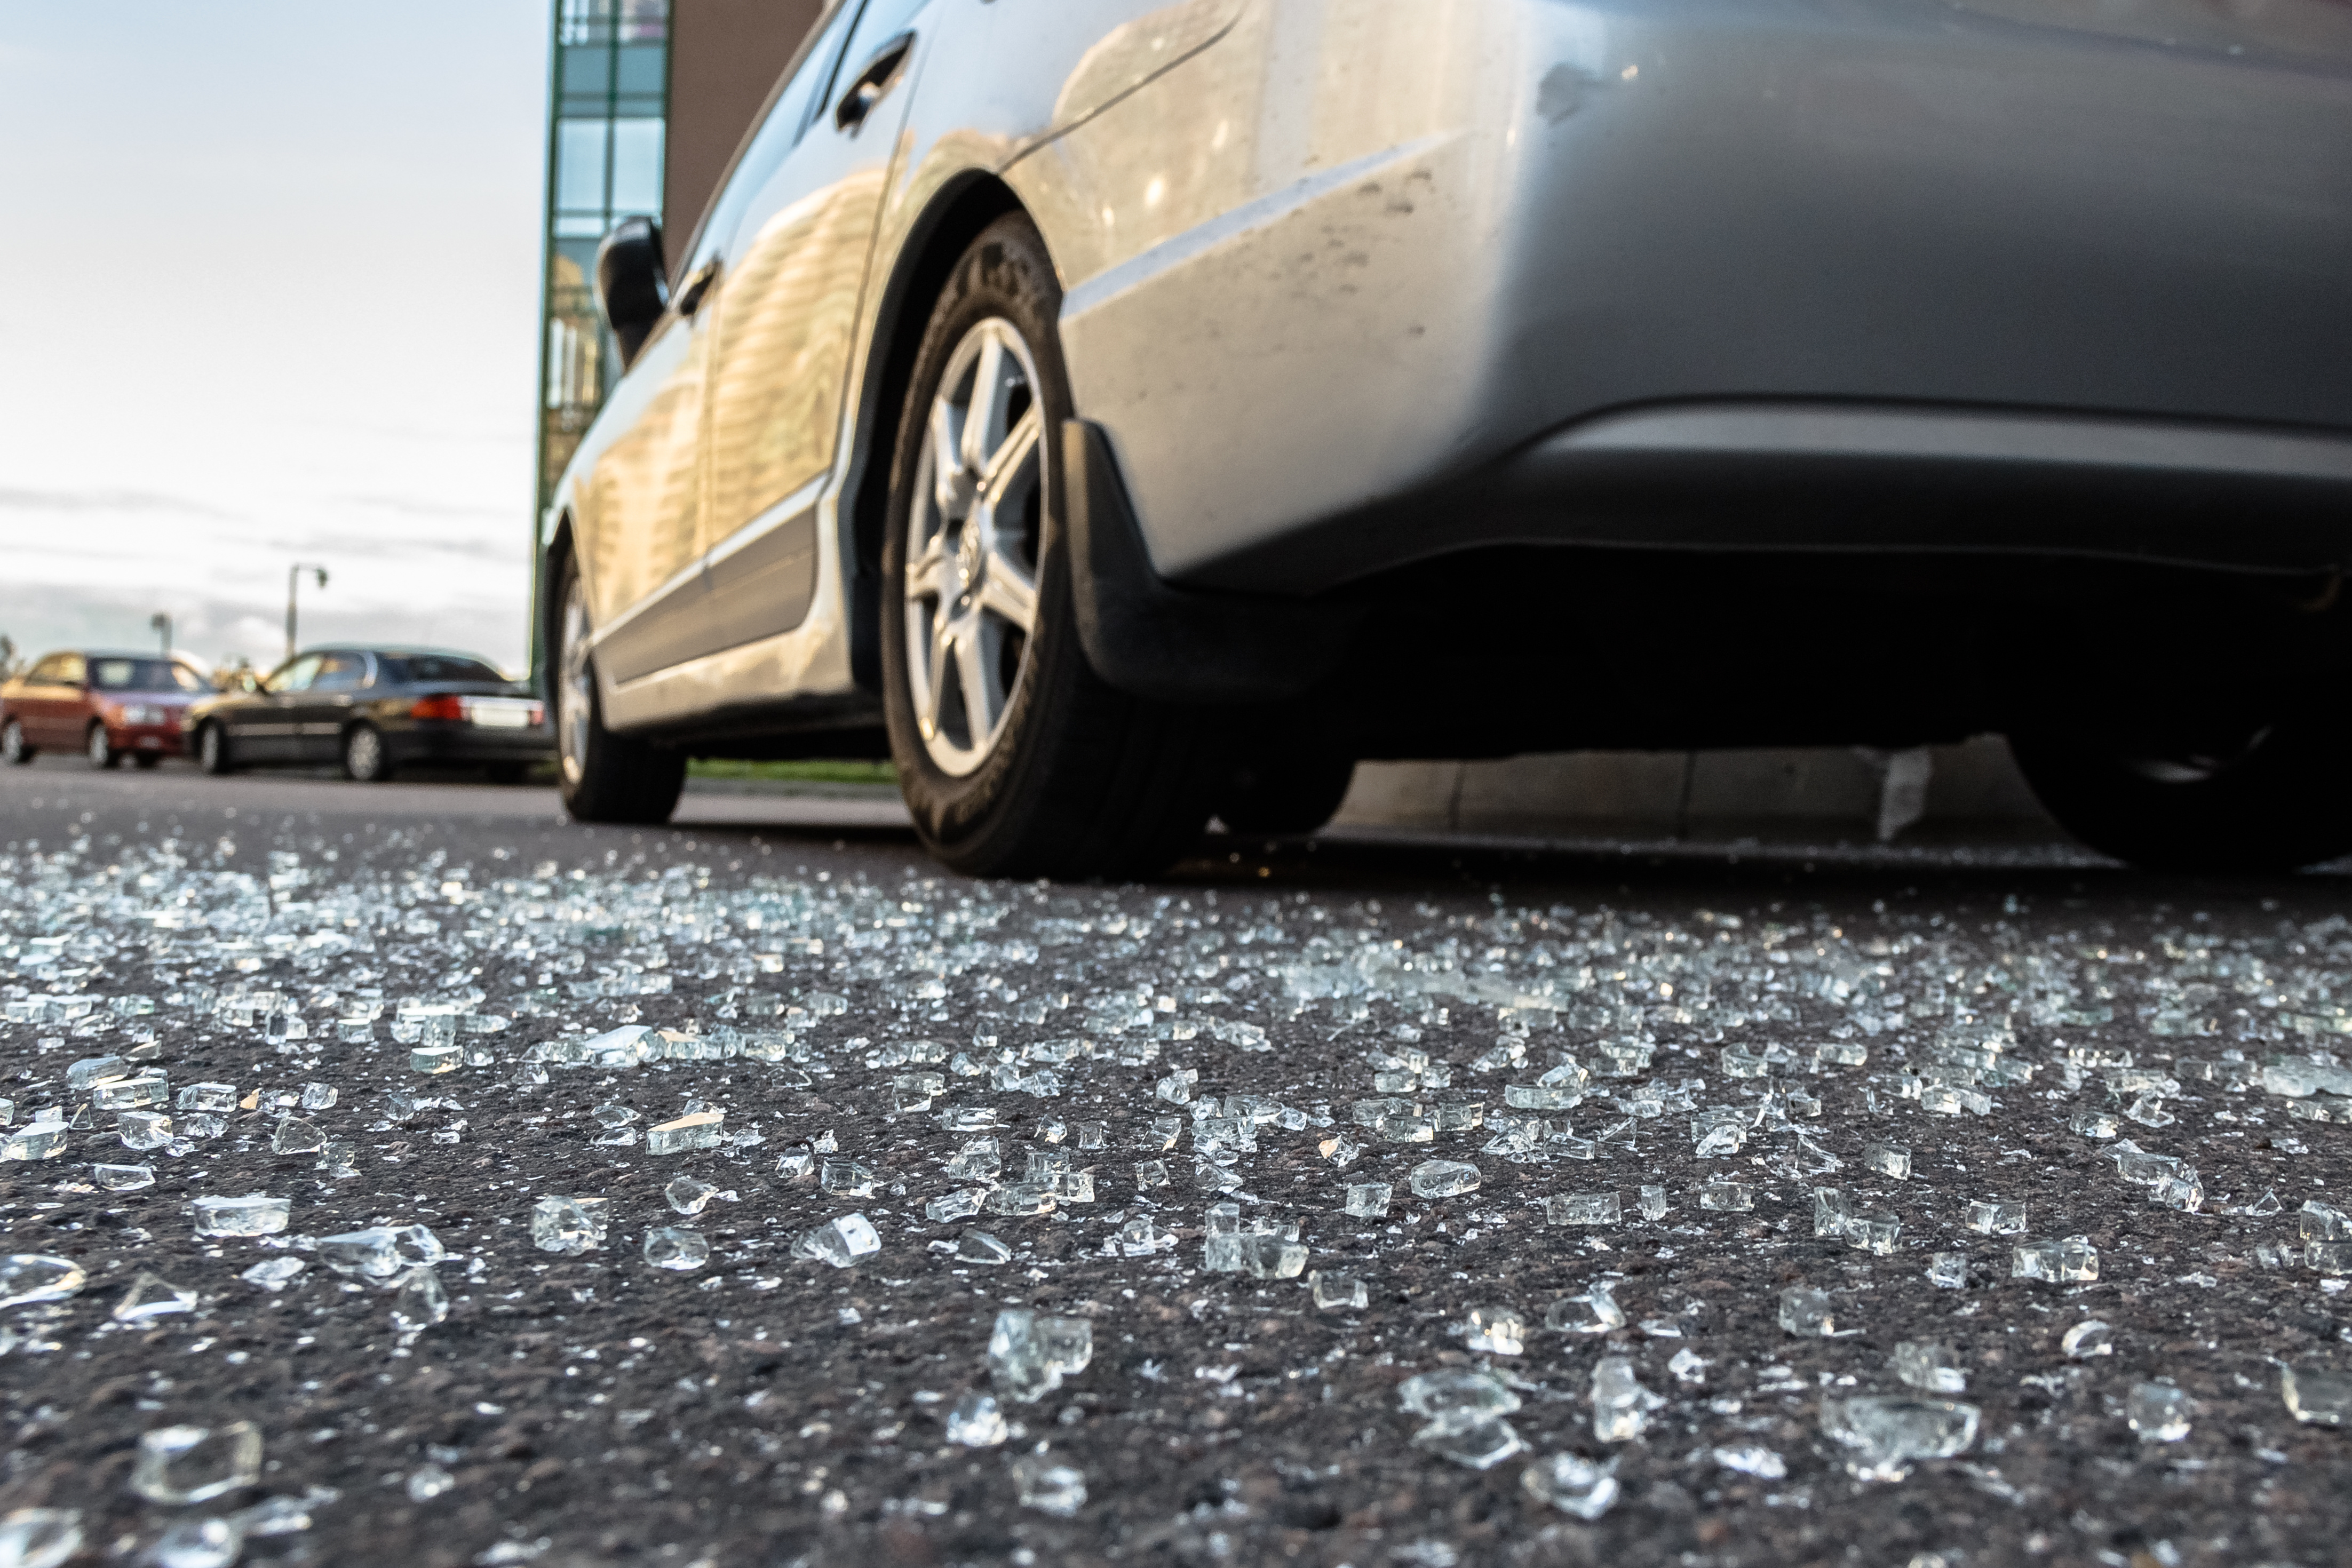 Thieves smashed the windows of four parked vehicles Feb. 28, 2020, in the 2000 block of West Schiller Street in Wicker Park.